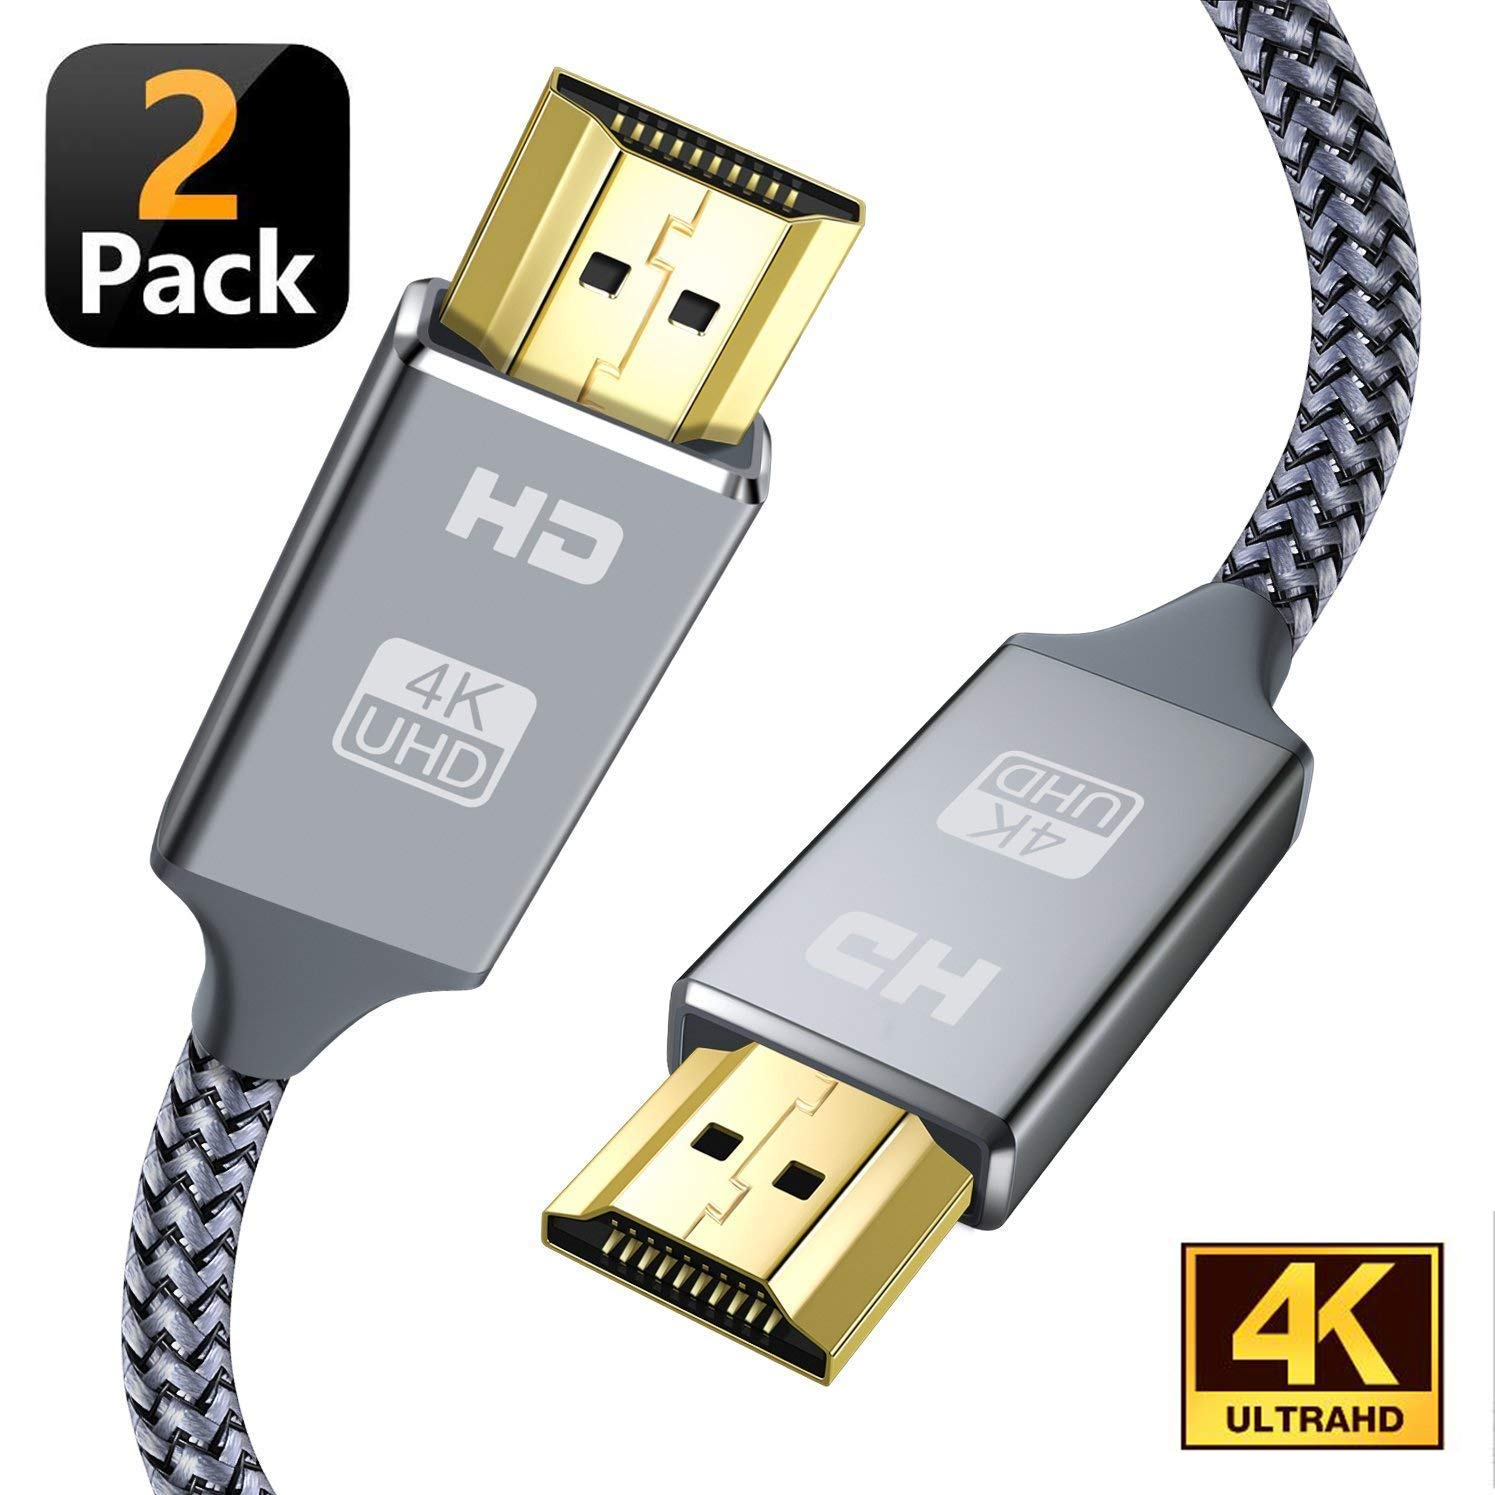 4K HDMI Cable,Capshi [6.6Ft,2Pack] High Speed 18Gbps HDMI 2.0 Cable, 4K@60Hz 30AWG Braided HDMI Cord, Gold Plated Connectors, Ethernet/Audio Return, 4K UHD 2160p, HD 1080p, 3D, Compatible TV PS3/4 2 by Capshi (Image #1)